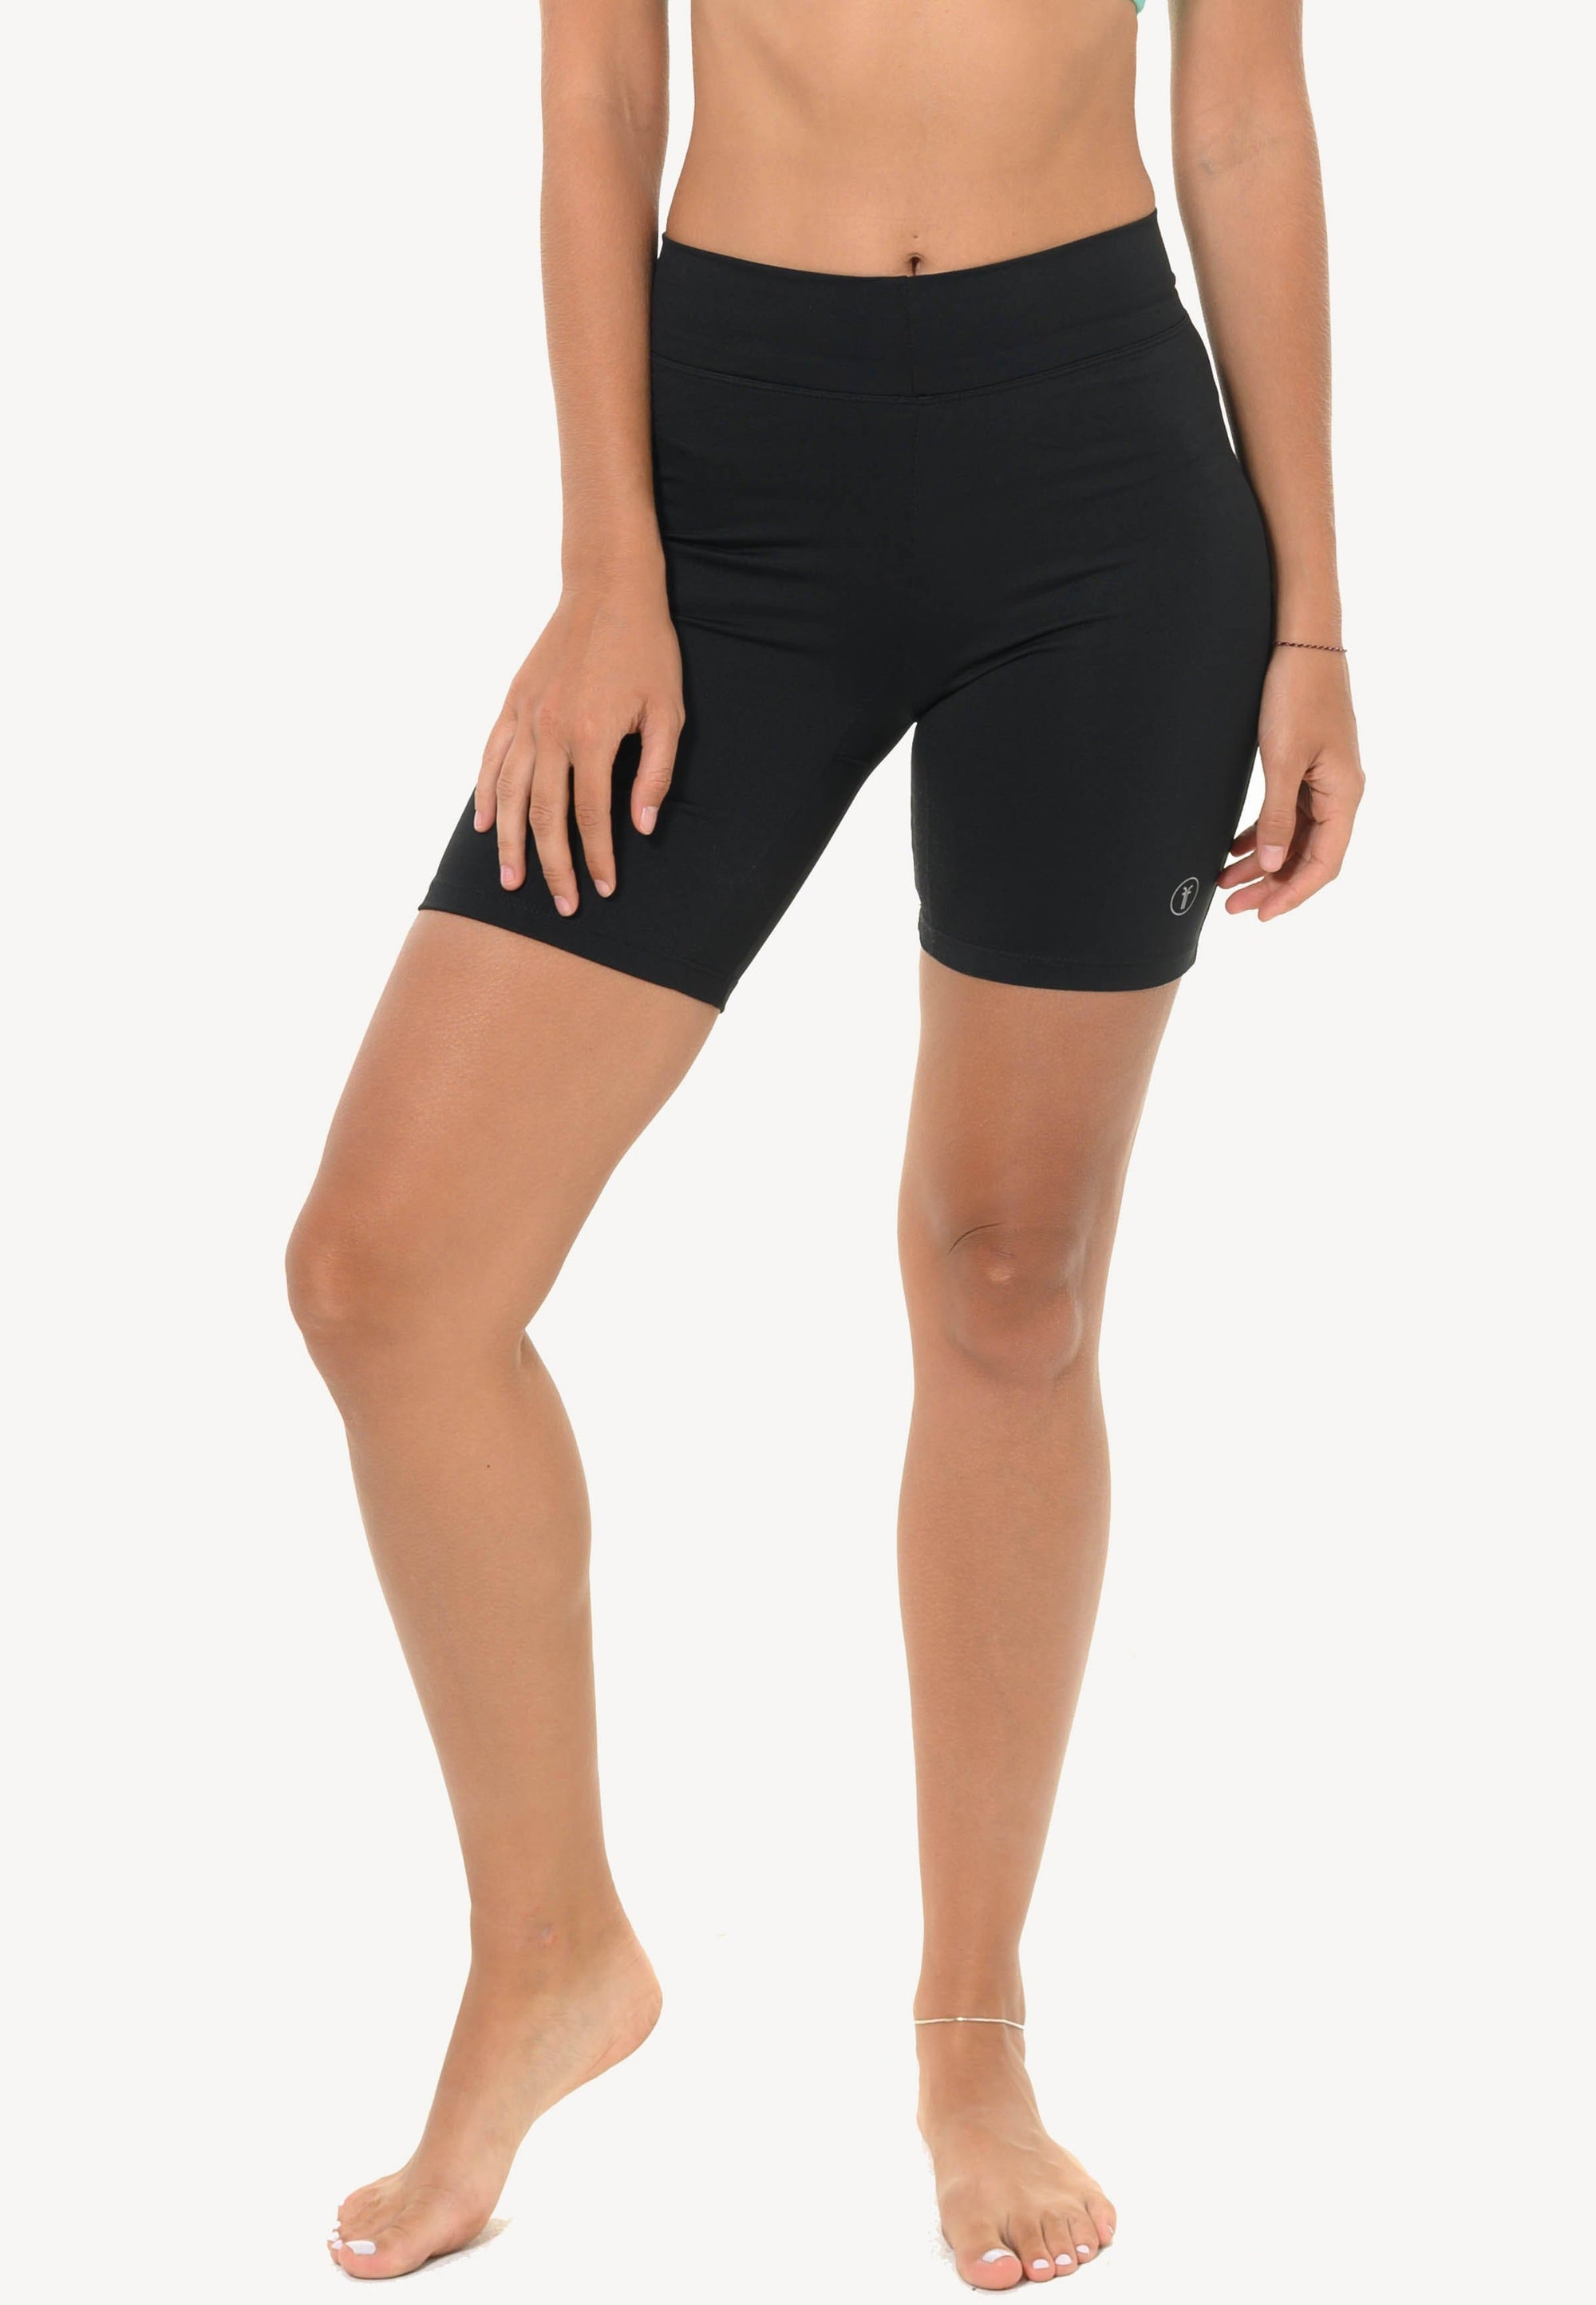 Classic Bike Shorts in Black (S - L)